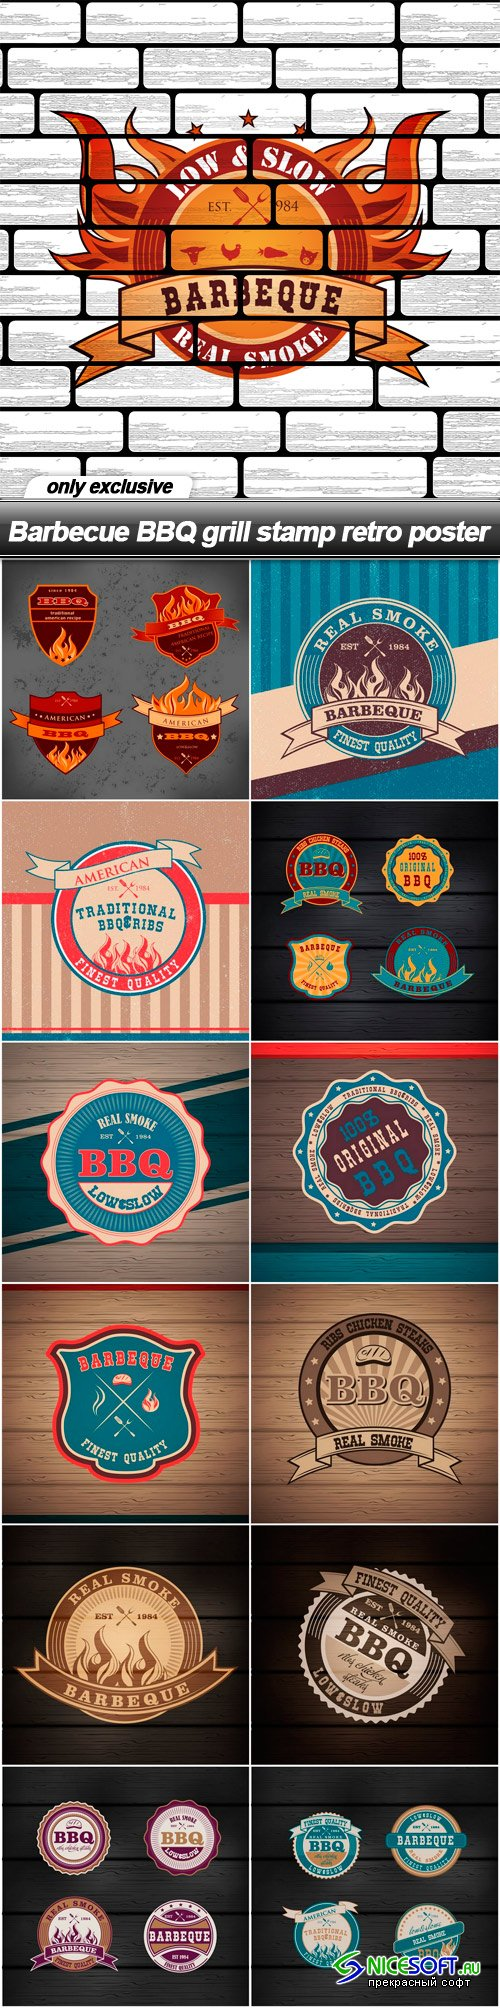 Barbecue BBQ grill stamp retro poster